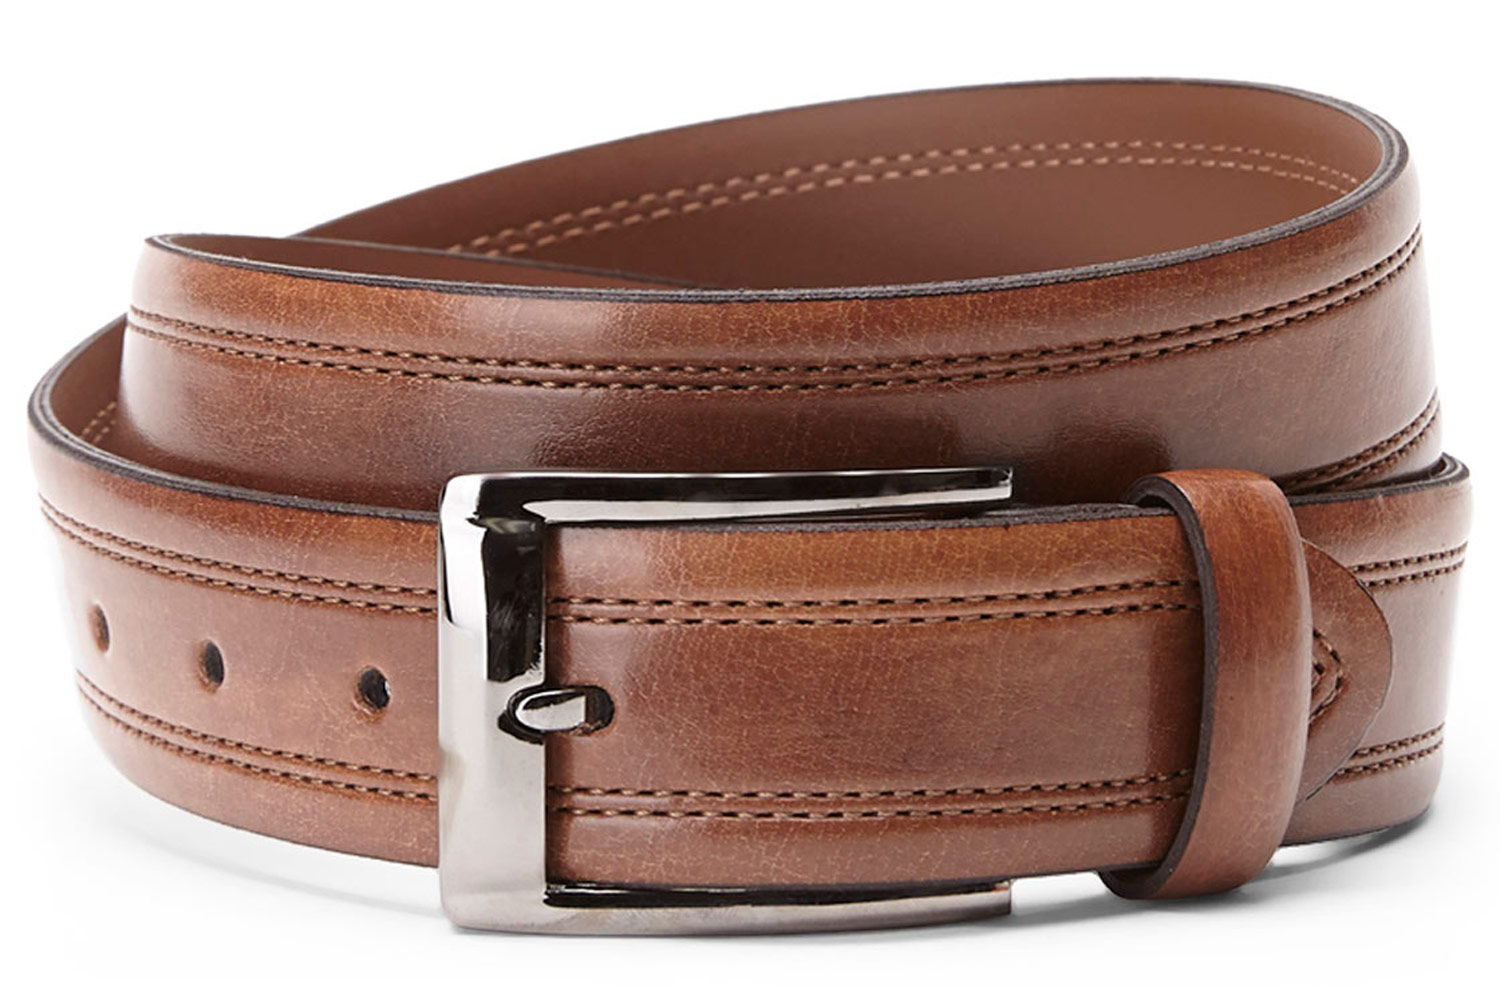 Bosca B03744 11 Men's Brown Leather Belt Metal Buc